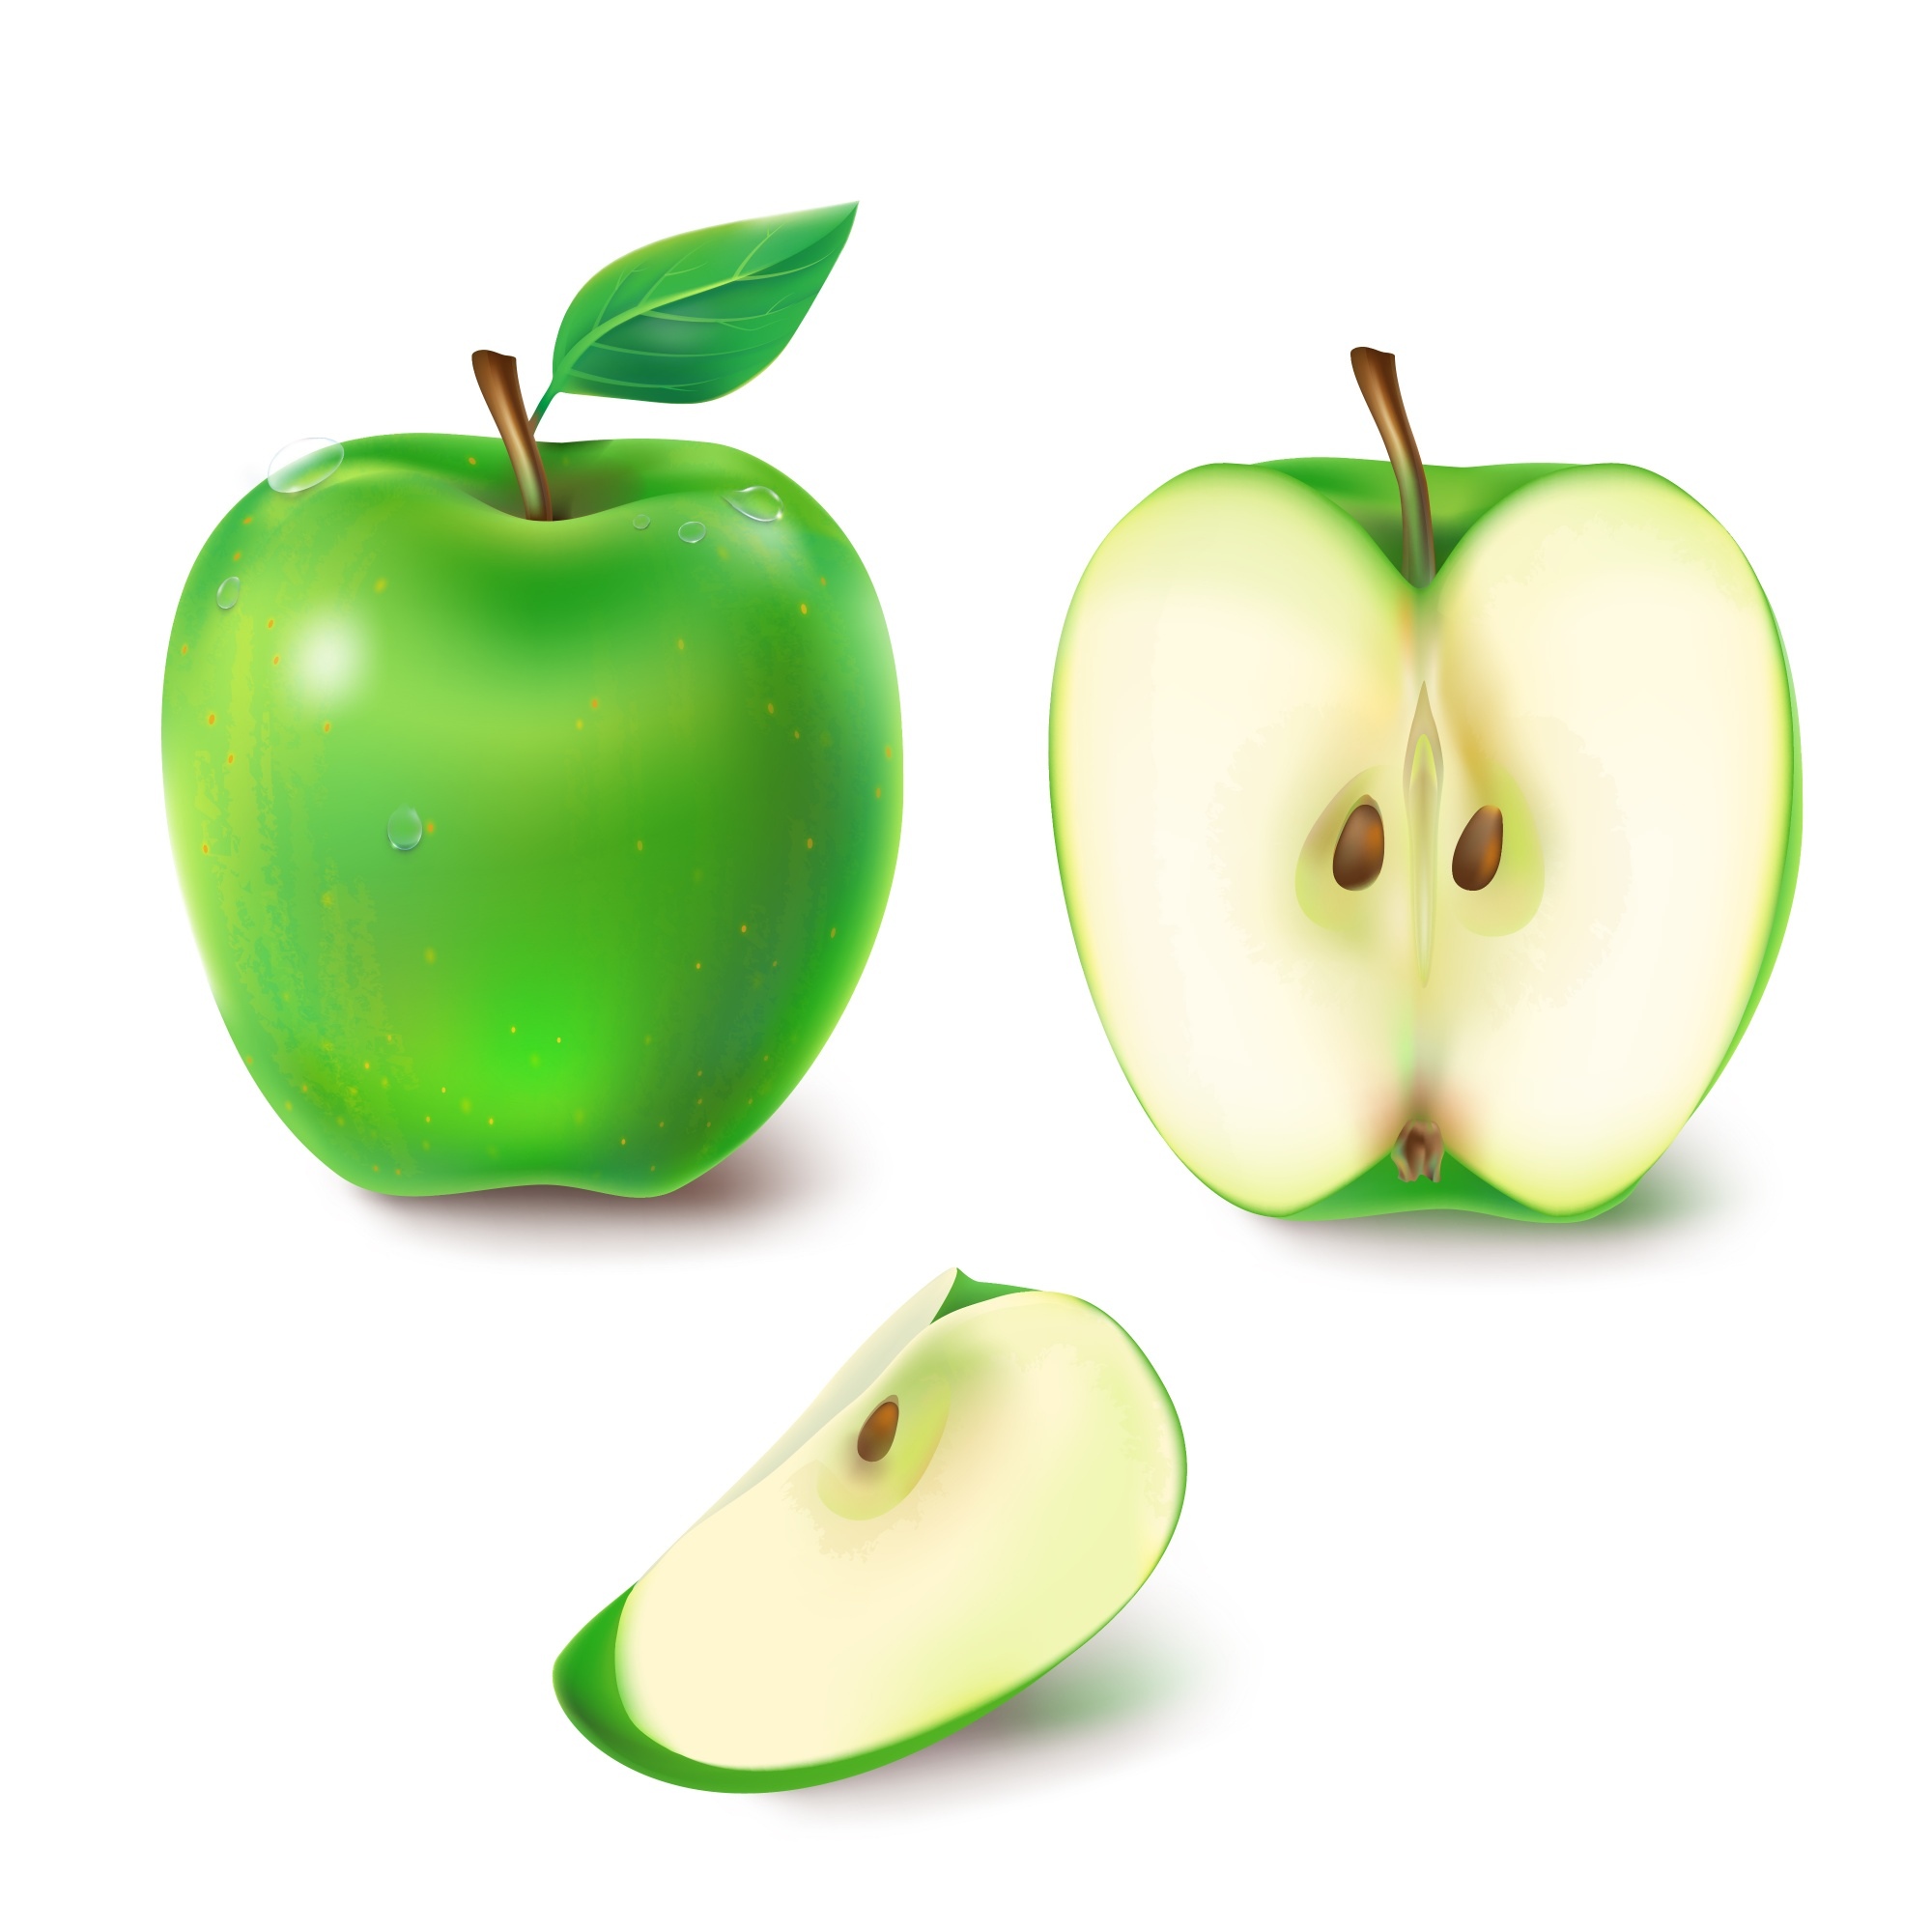 Vector illustration of a juicy green apple.